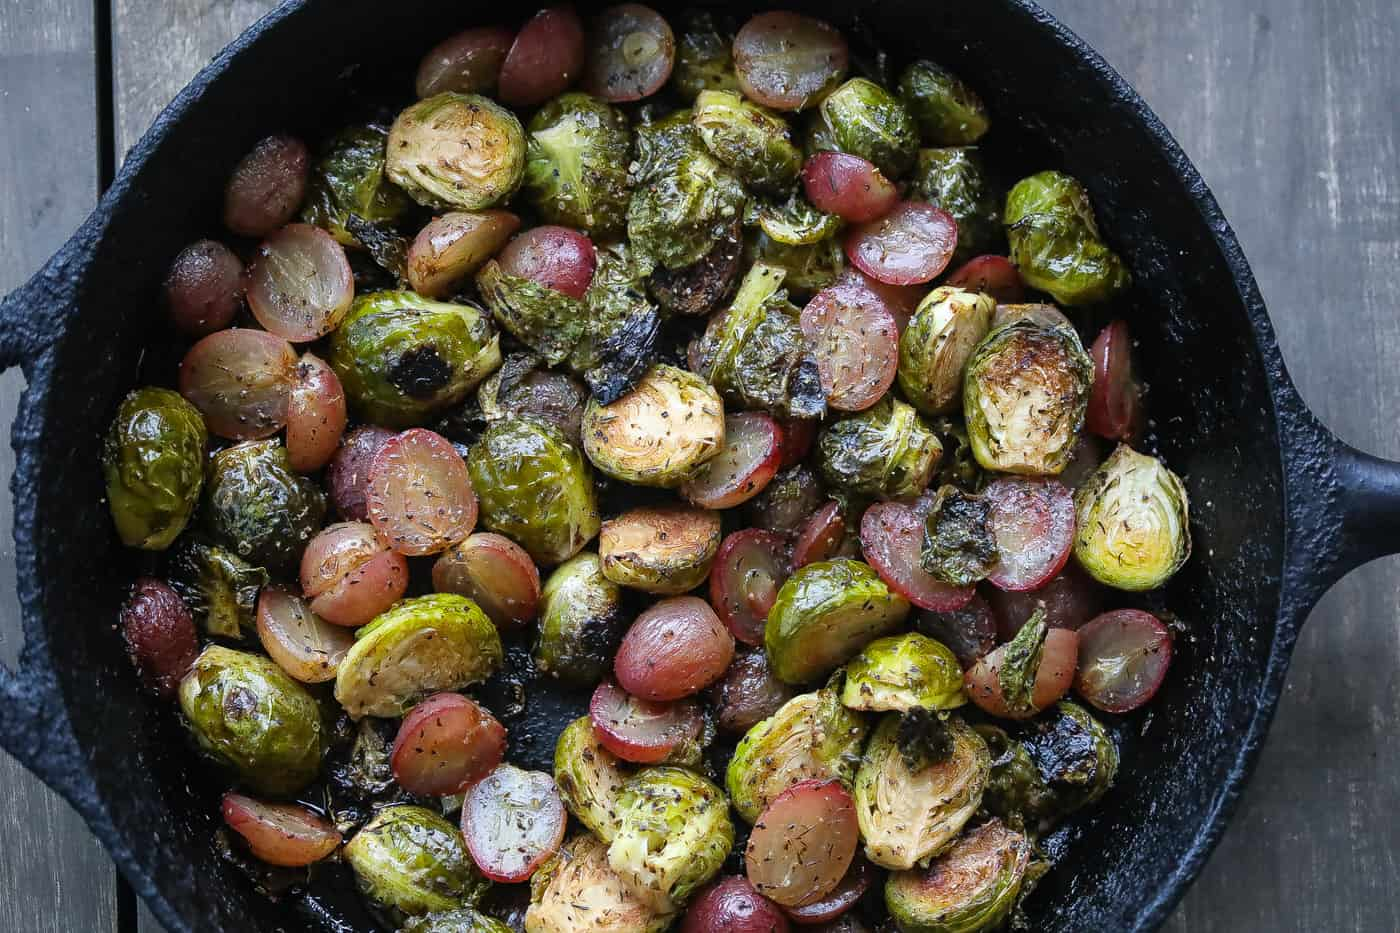 roasted brussel sprouts and grapes in a skillet